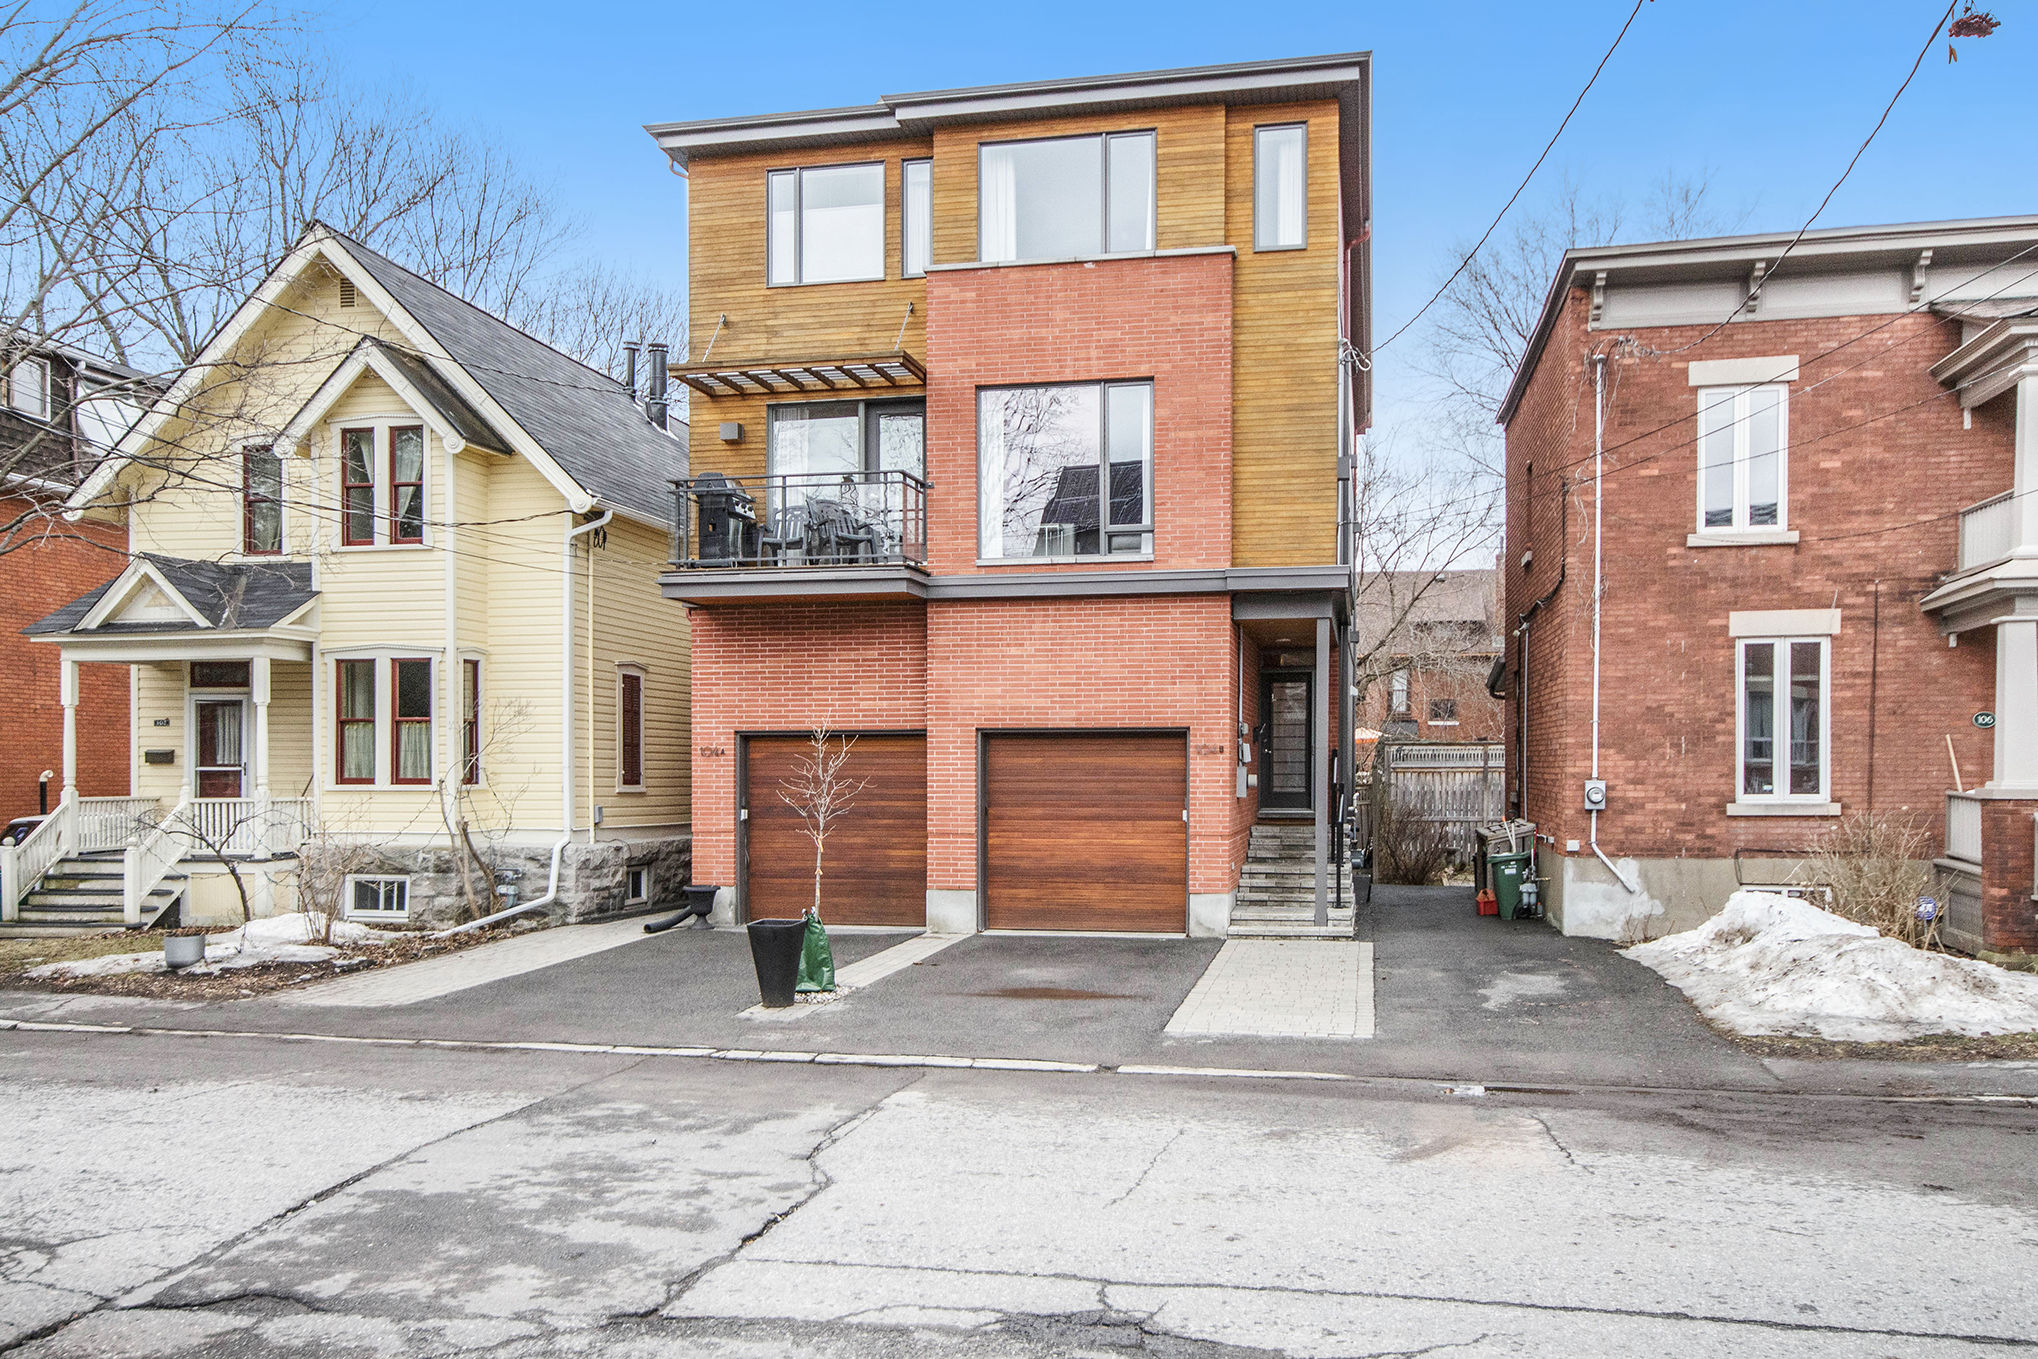 B-104 Hopewell Avenue – Sold April 2020